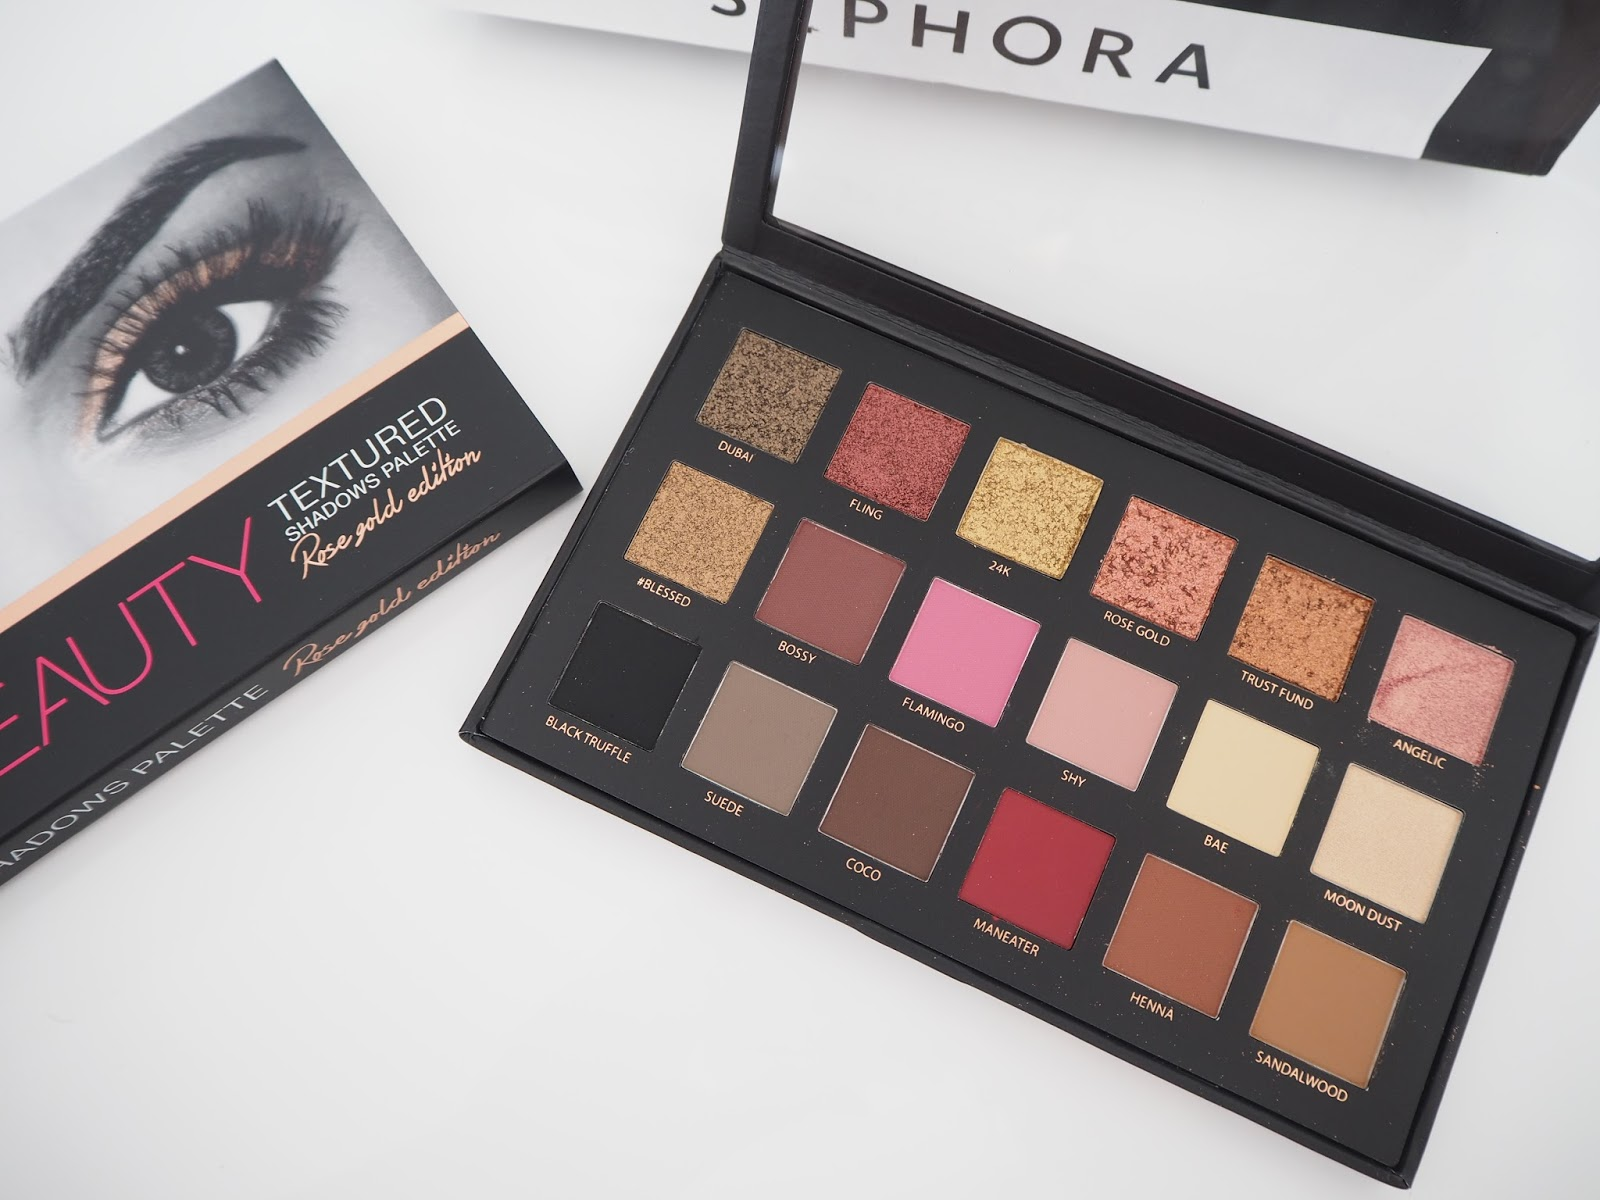 Huda Beauty Textured Eye Shadow Palette-Rose Gold Edition review